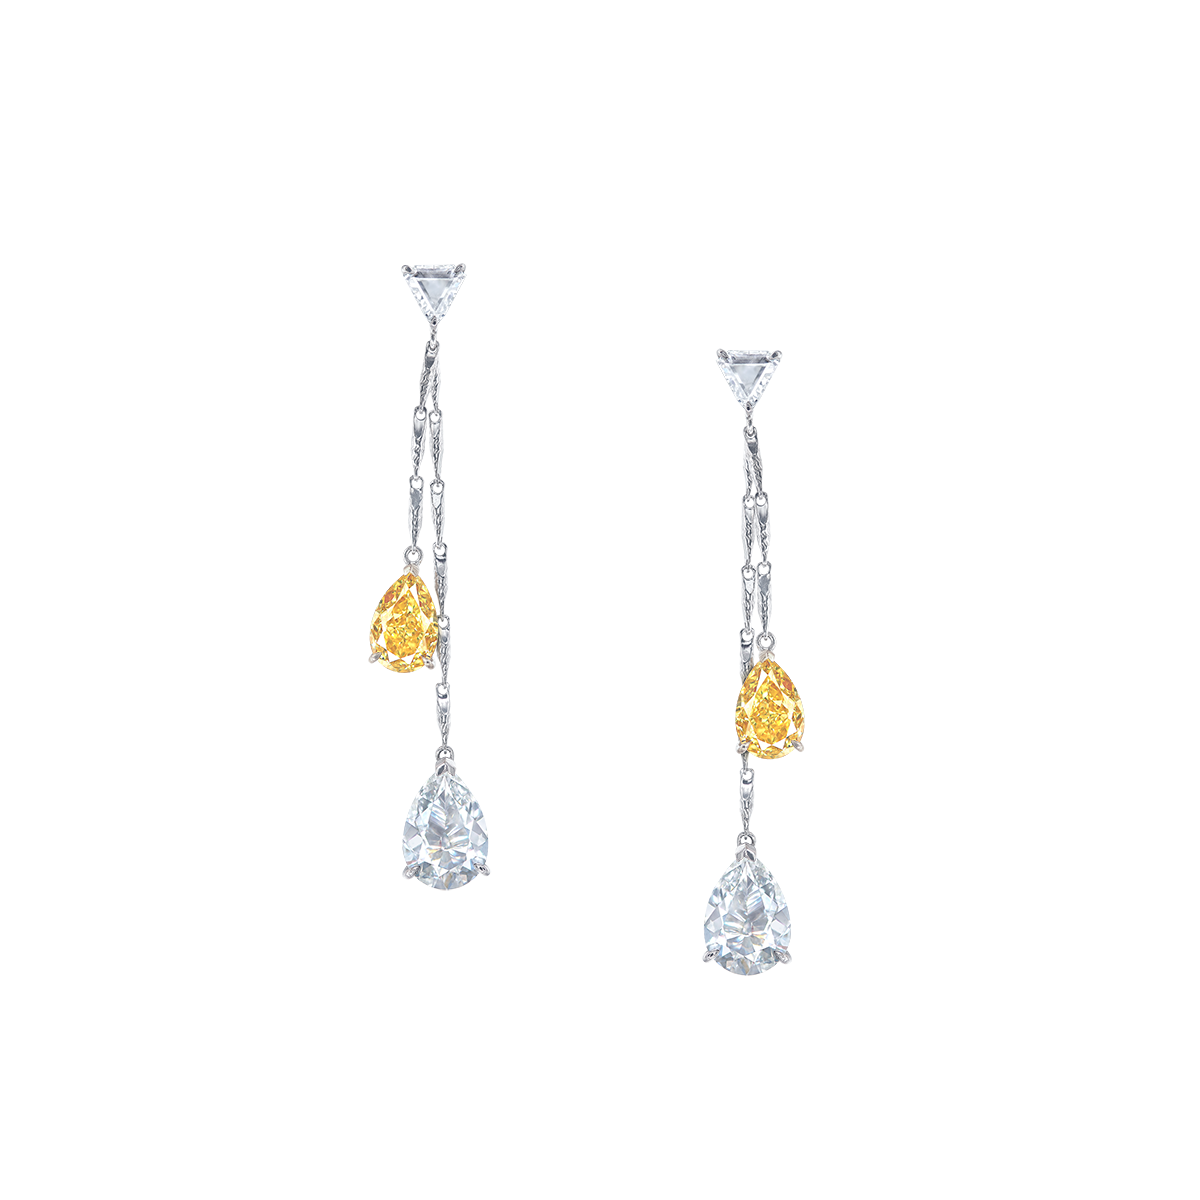 GIA深彩黃彩鑽鑽石耳環